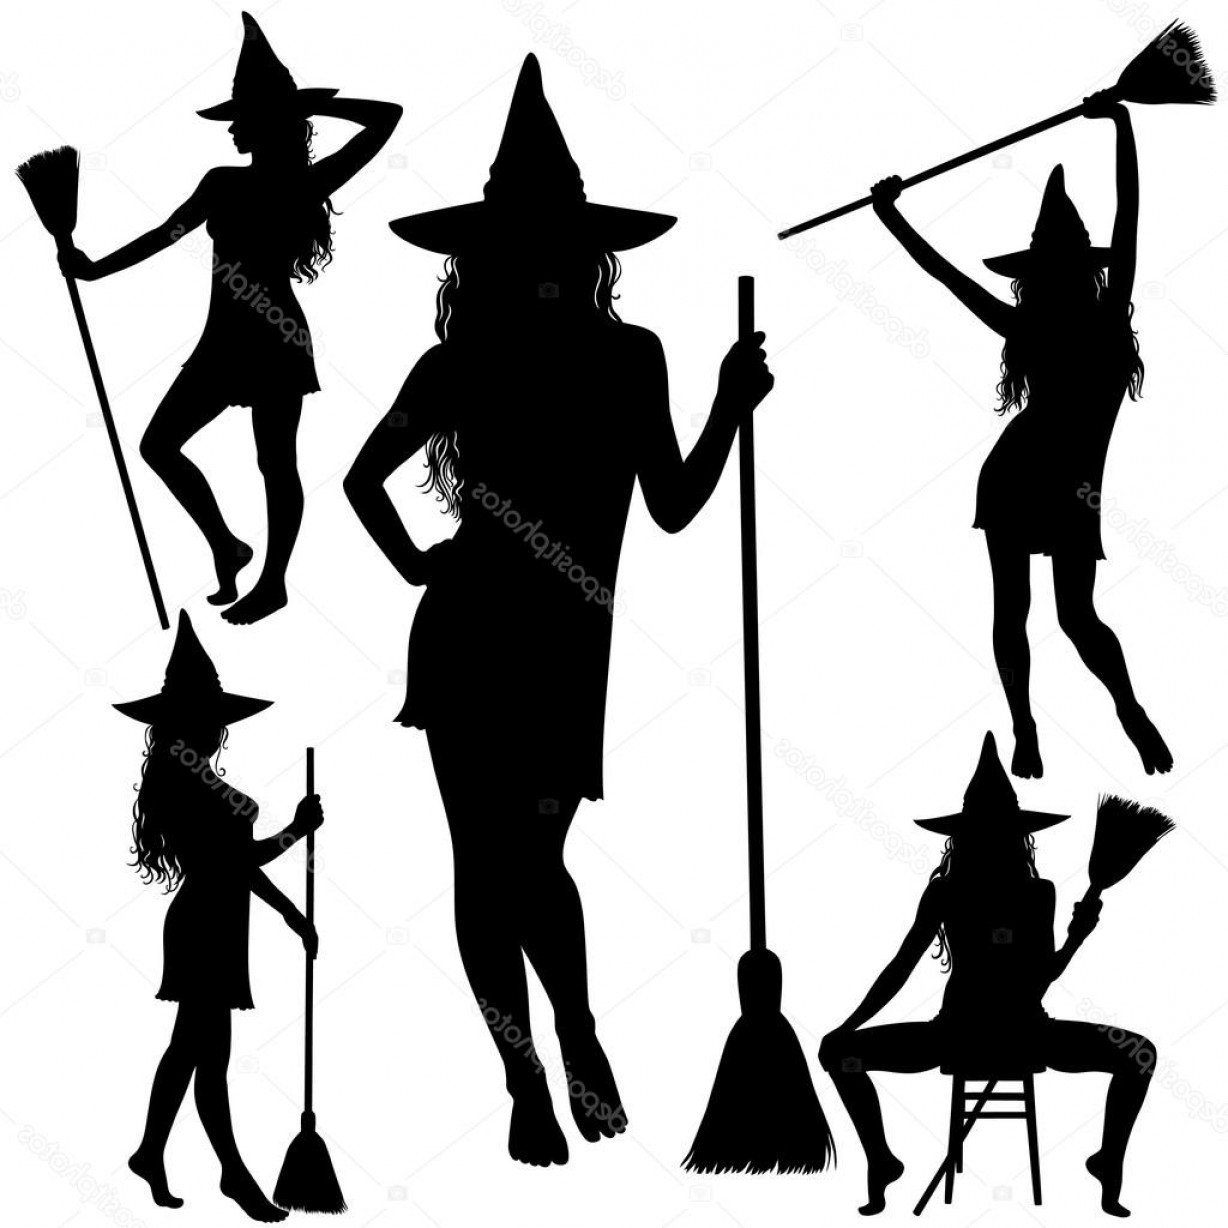 Color Guard Silhouette Vector: Stock Illustration Halloween Witch With Broomstick Silhouettes